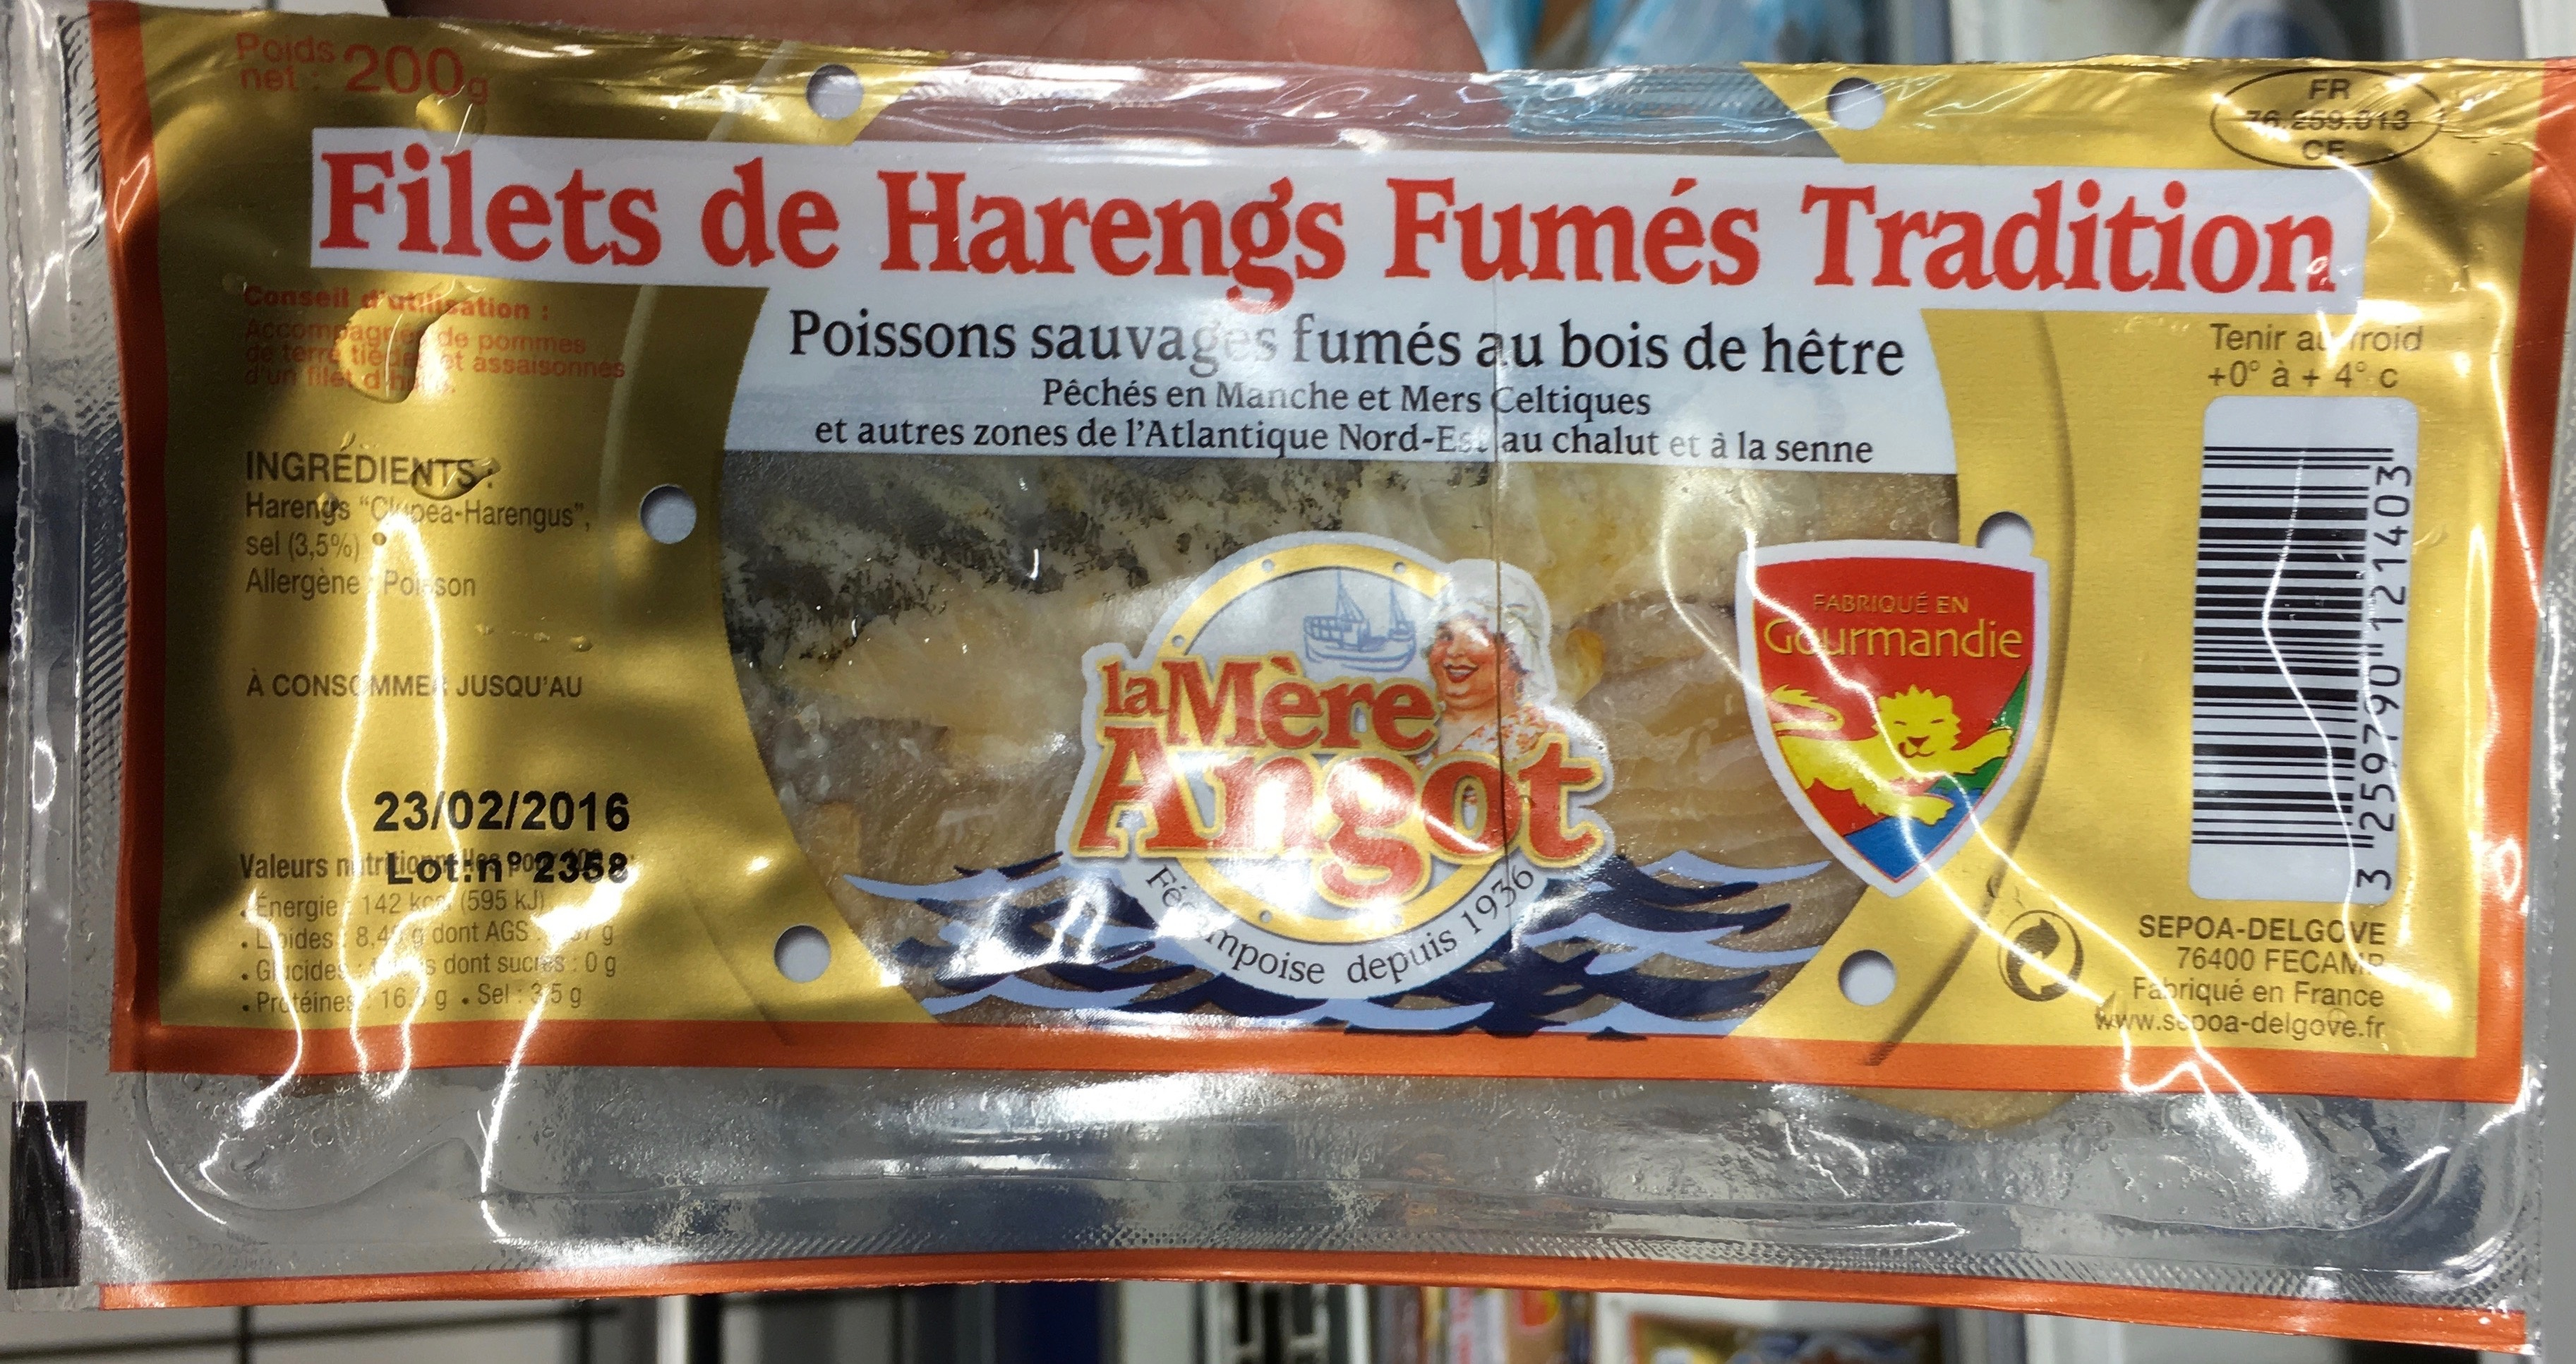 Filets de Harengs Fumés Tradition - Product